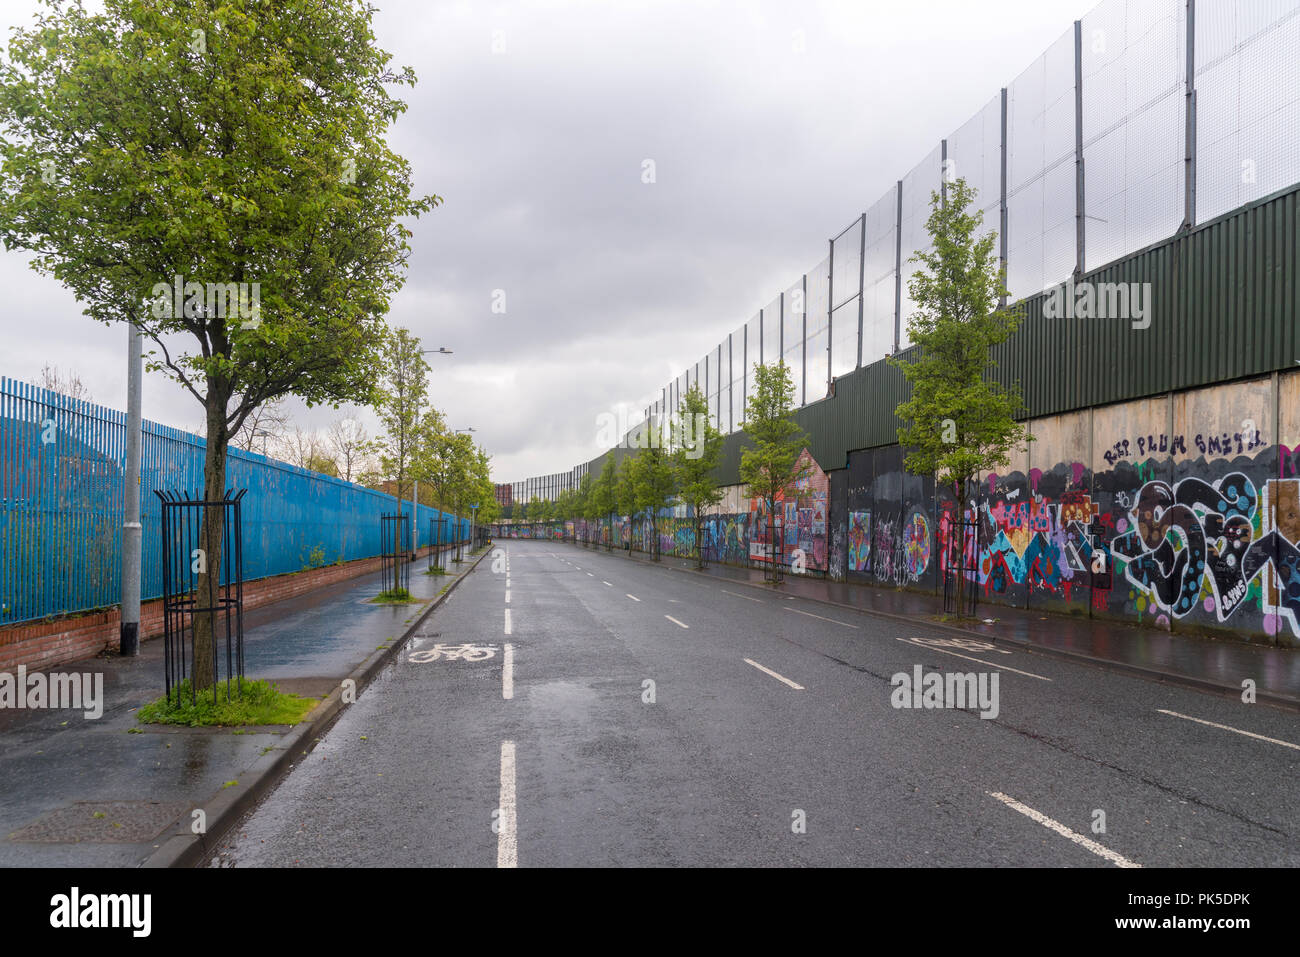 The Peace wall in West Belfast, Northern Ireland - Stock Image